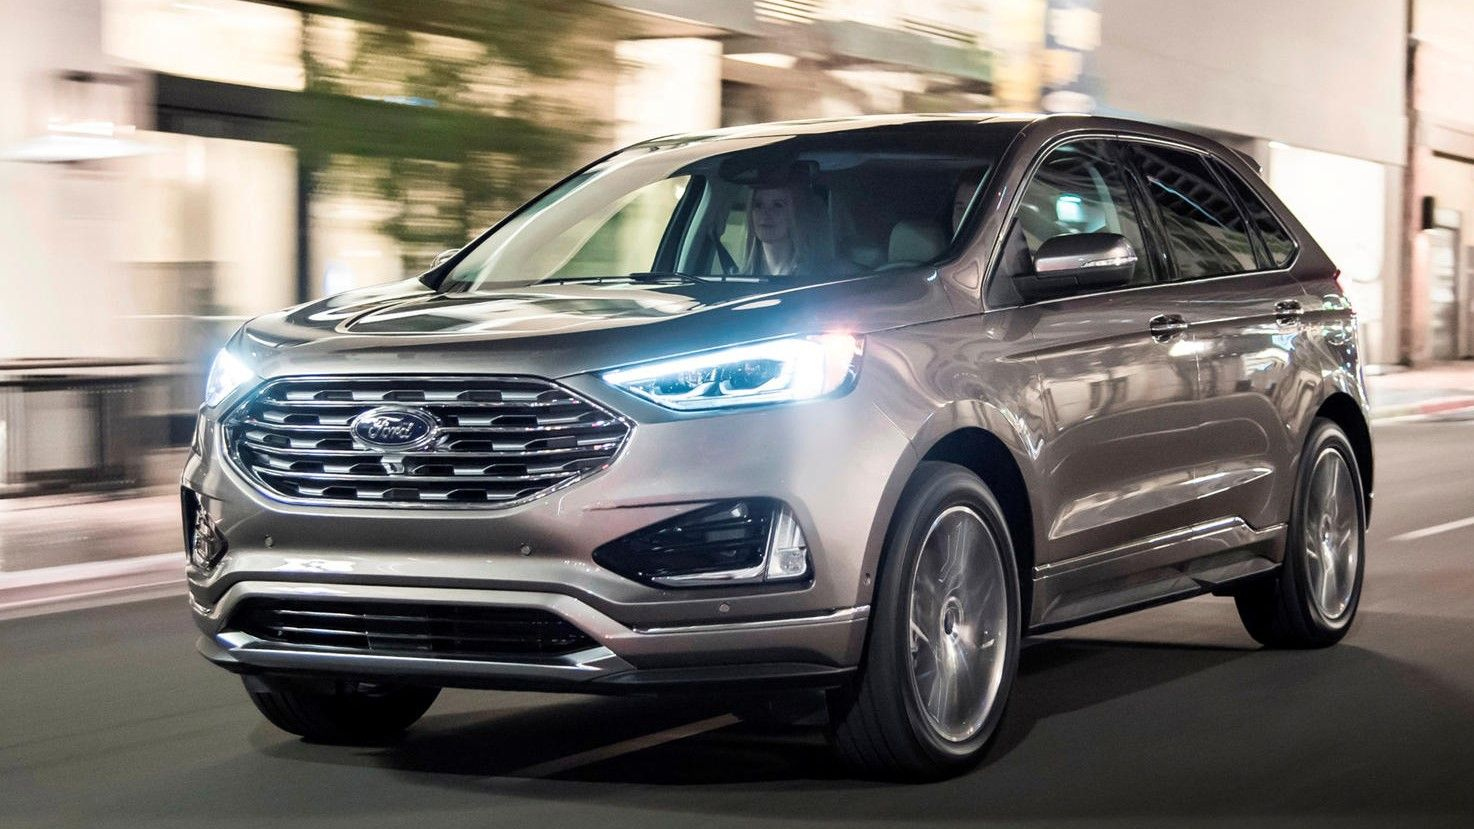 2021 Ford Edge Review- Trims, Prices, Towing Capacity